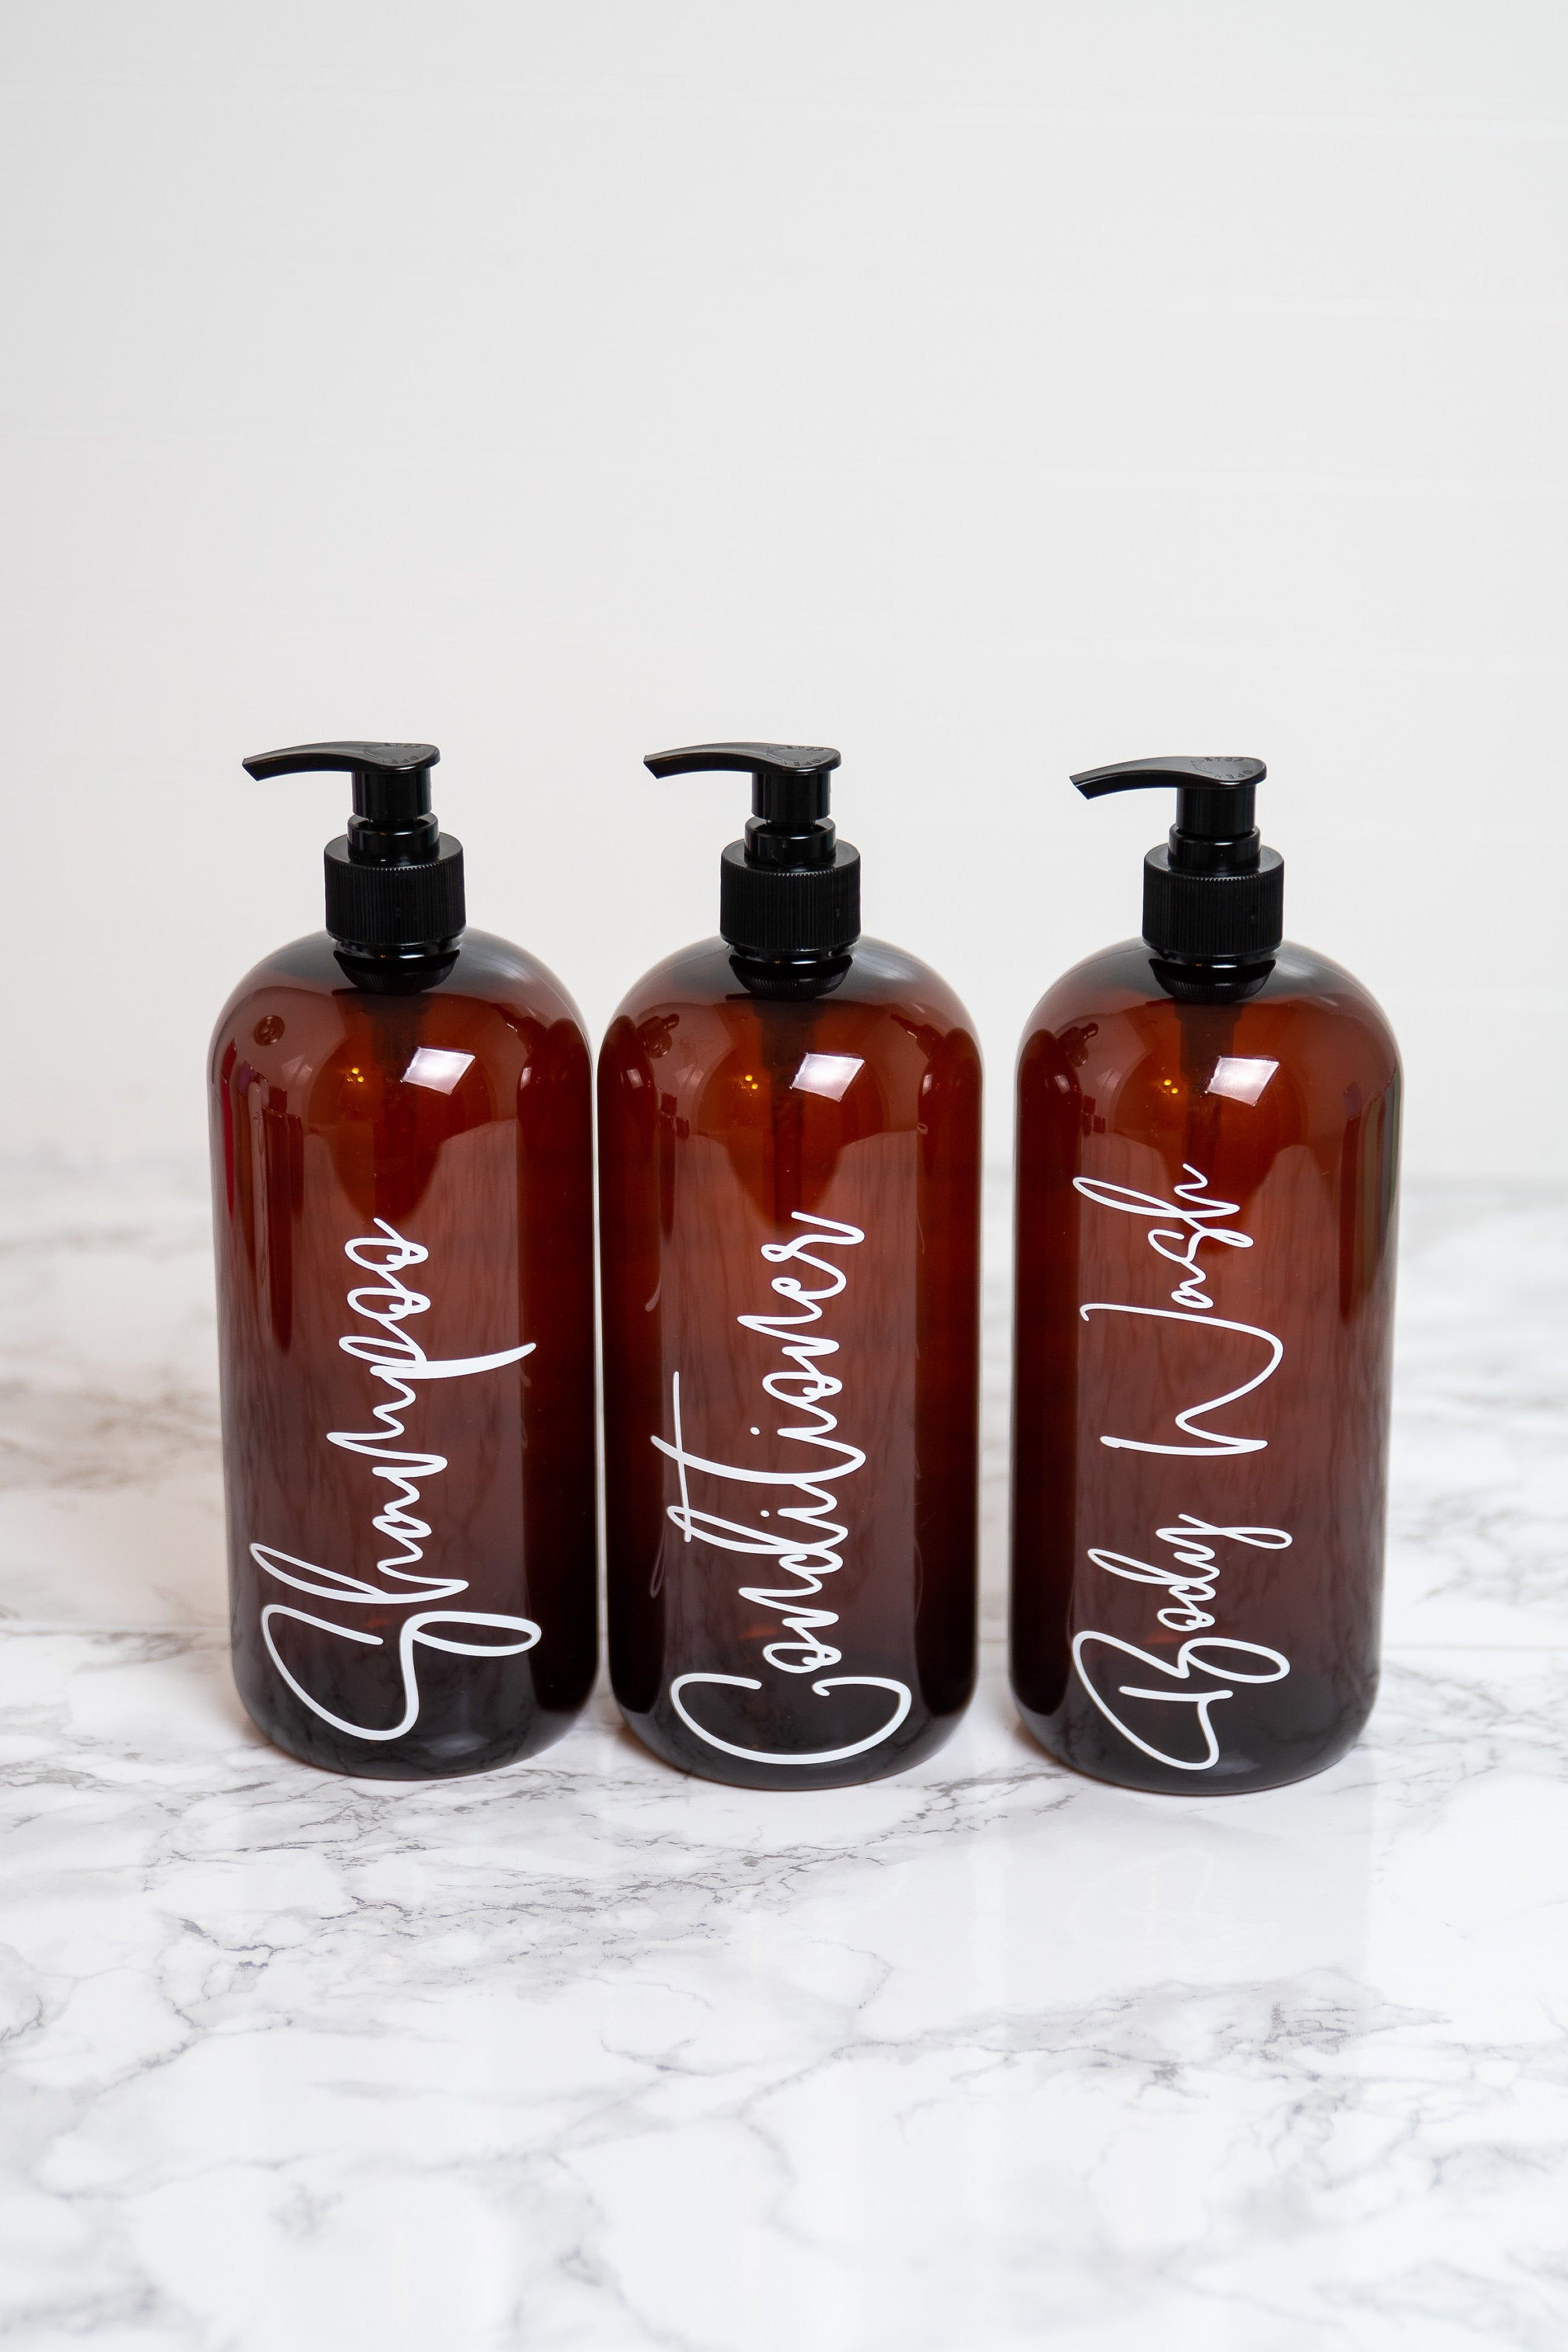 32 oz Shampoo Bottles with Pump, Shower Bottles Refillable with Labels, Shower Organization, Bathroom Bottles